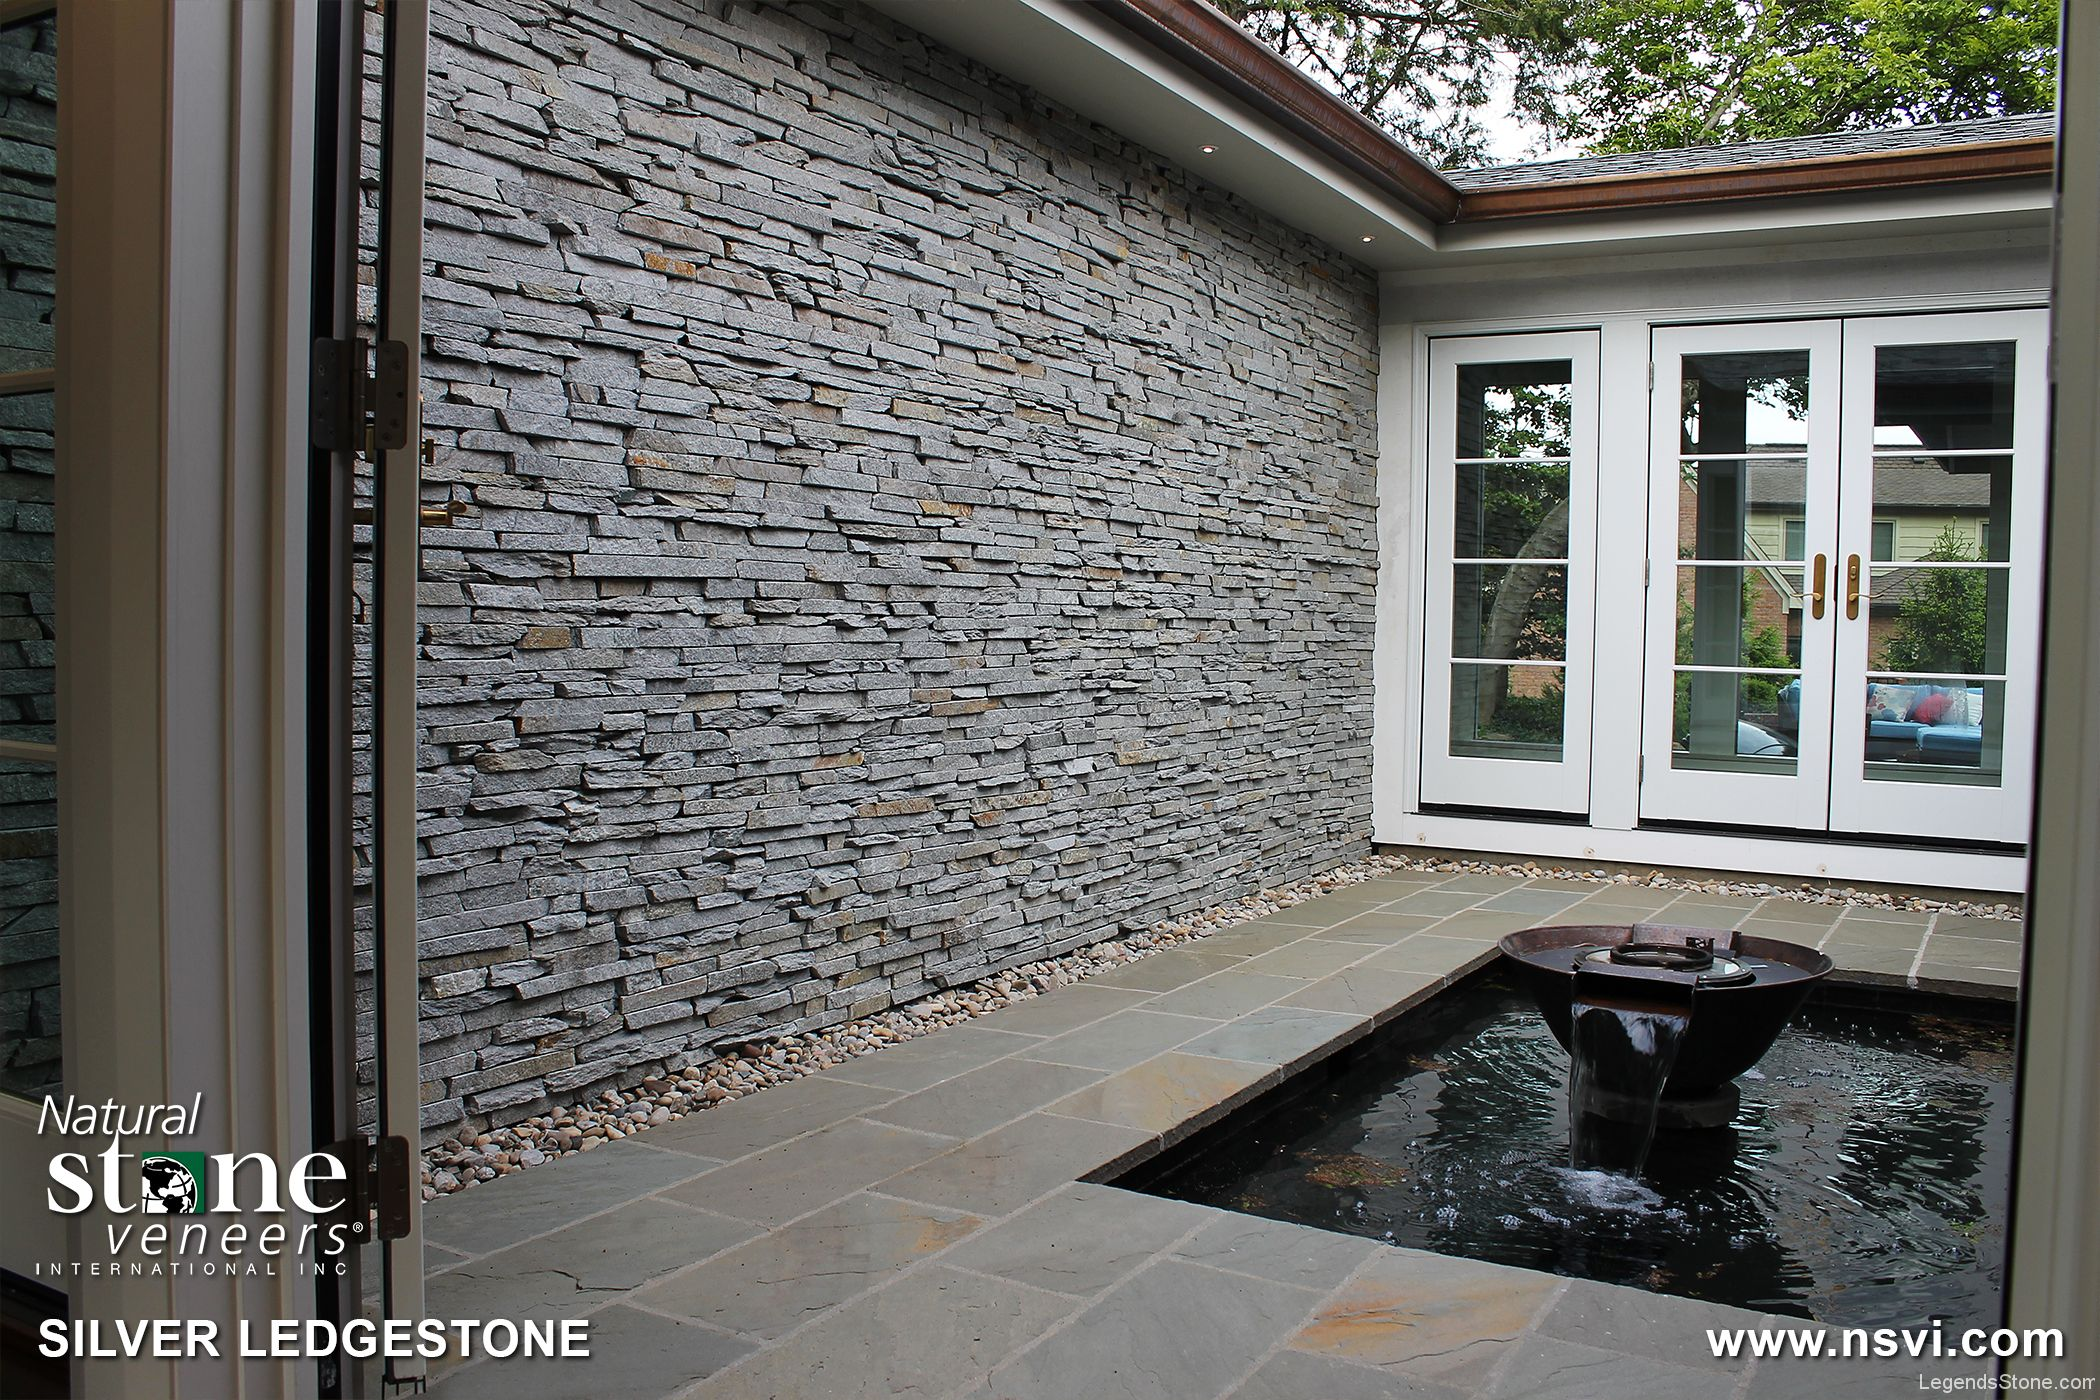 Silver Ledgestone Legends Stone Natural Stone